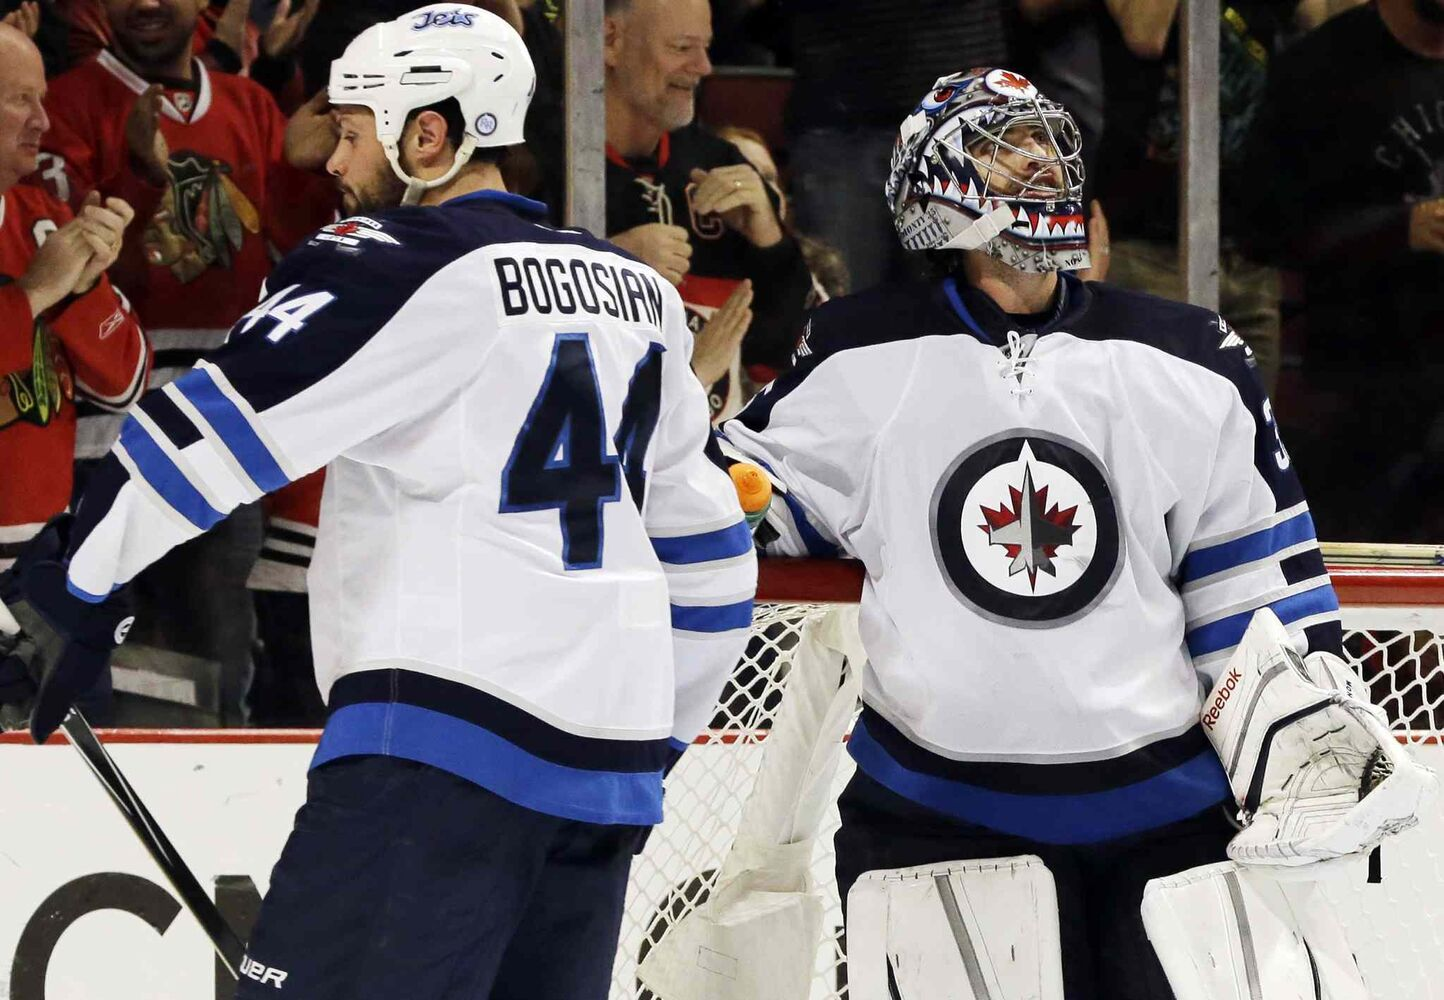 Winnipeg Jets goalie Al Montoya (right) looks up at the scoreboard as Zach Bogosian (44) reacts after Chicago Blackhawks' Brandon Pirri scored during the second period.